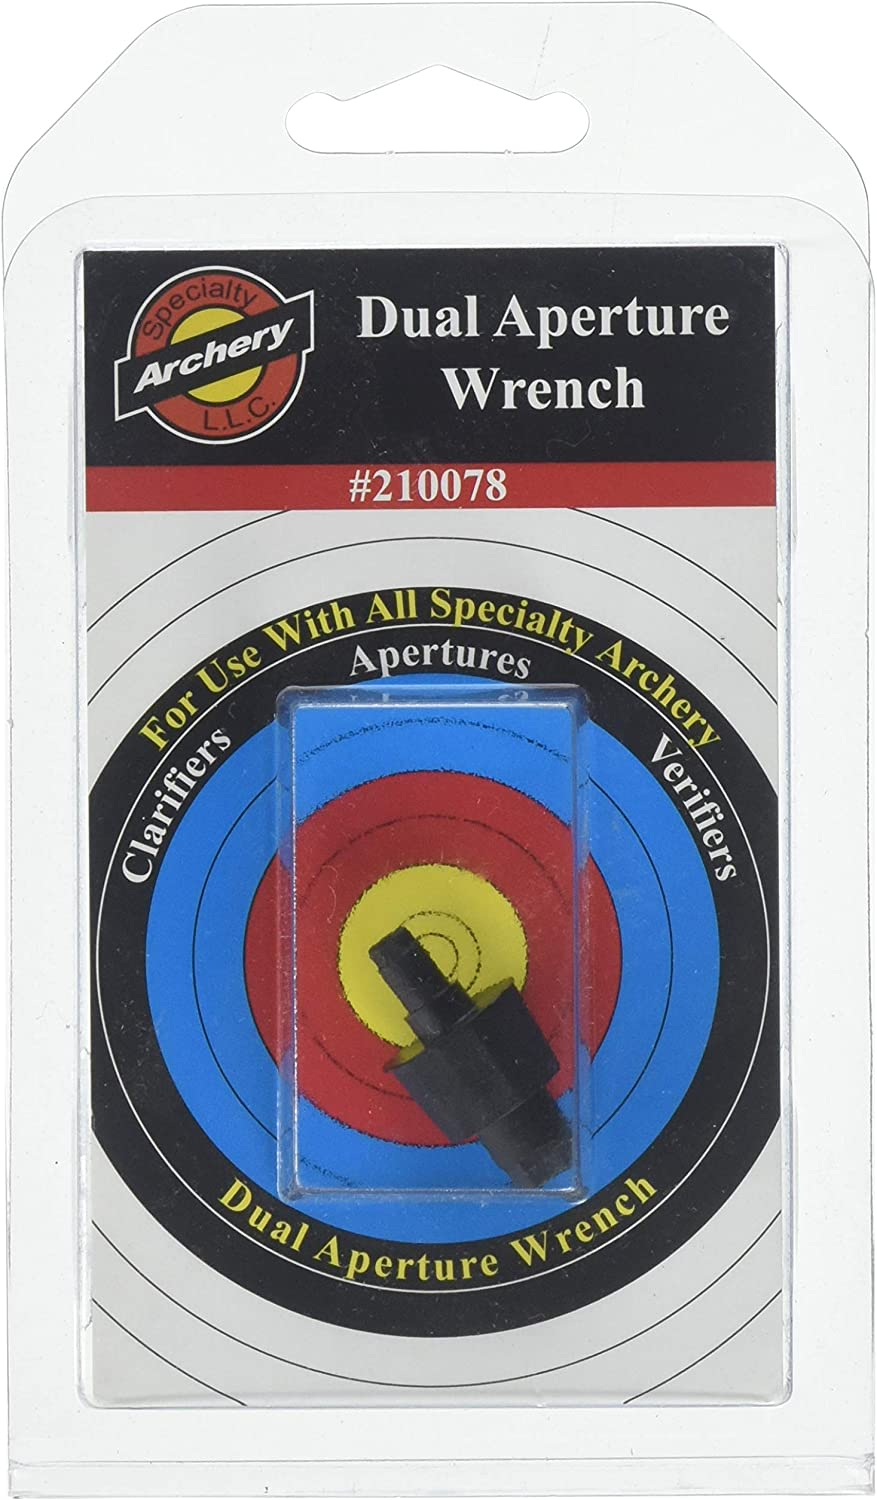 Specialty Archery Dual Aperture Wrench